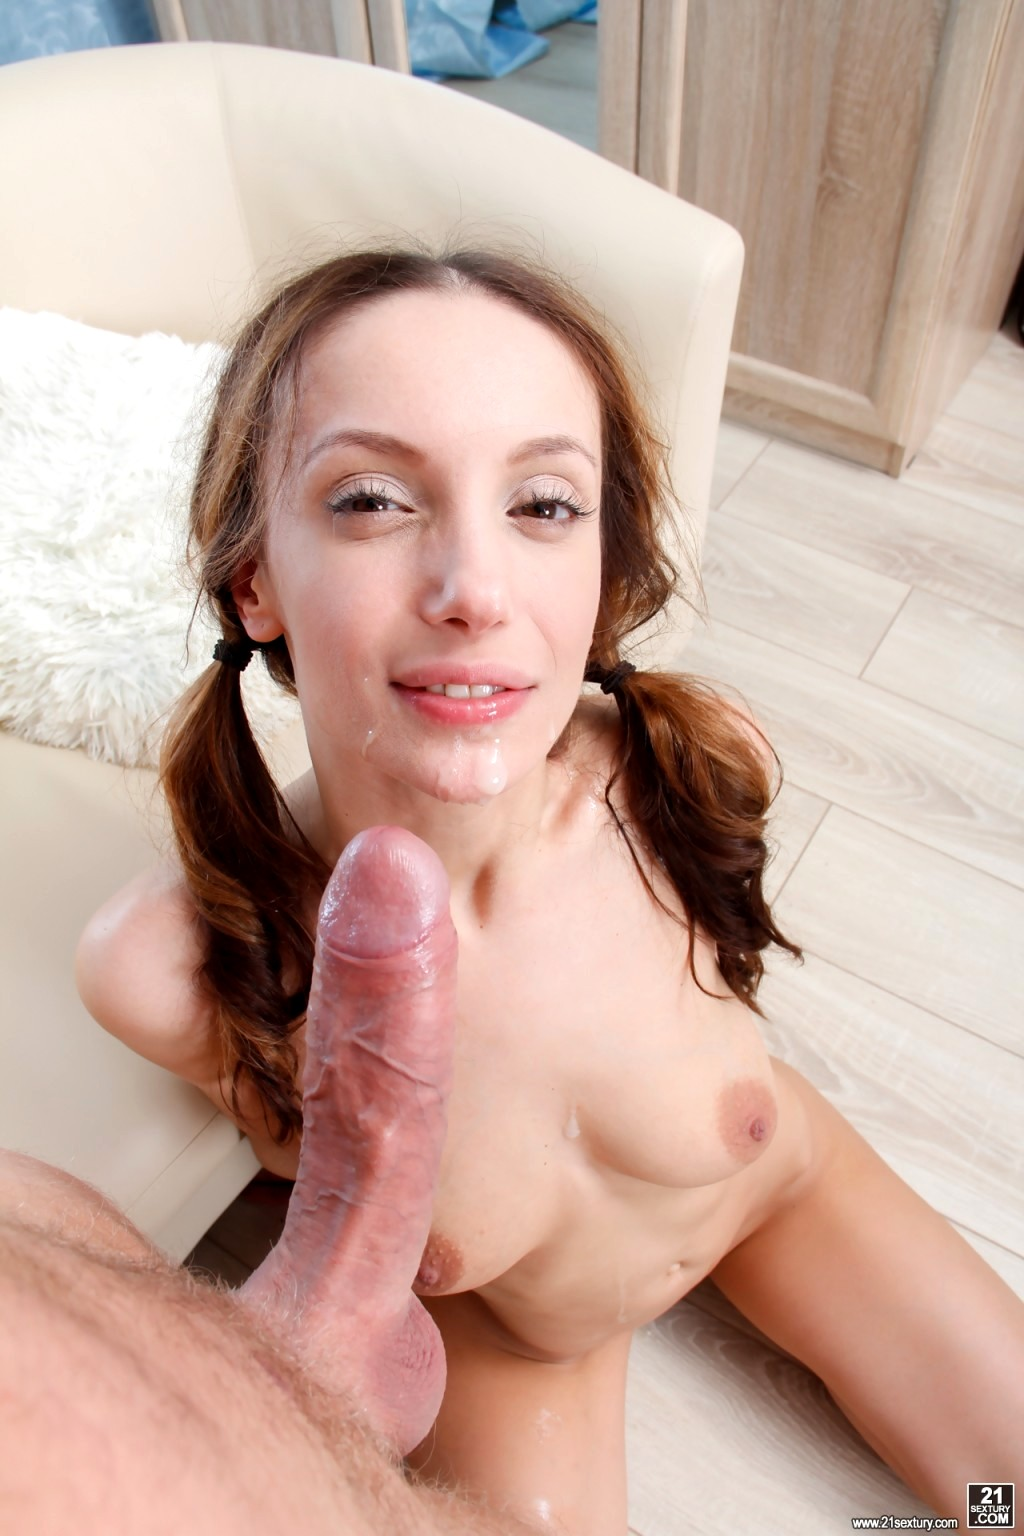 Babe Today 21 Sextury Hazel Dew Ideal Beautiful Mobile -9906